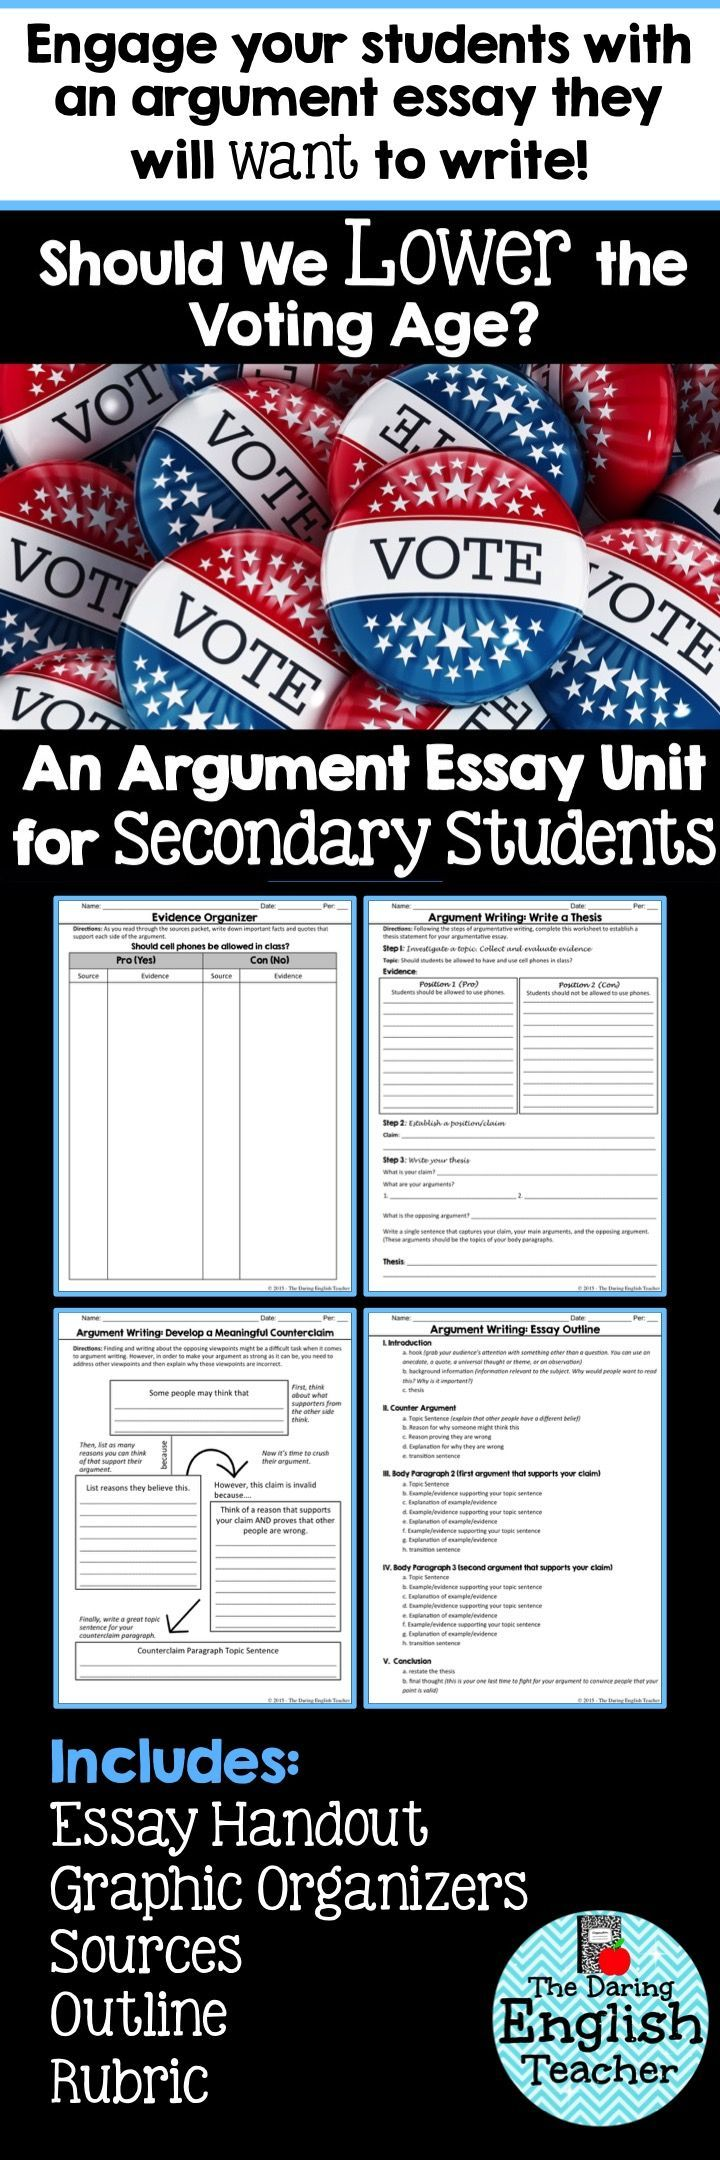 argumentative essay indisciplined students Free essay: corporal punishment in schools i wrote this paper for contemporary   the next key argument that i will present against corporal punishment in  to  indiscipline and that the student is quickly back in the classroom learning, rather .